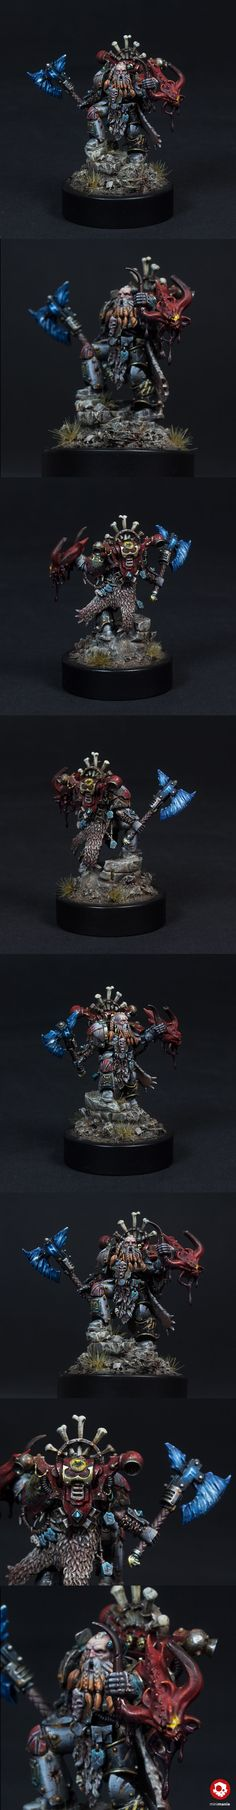 40k - Space Wolves Lone Wolf, 13th Company by kreativerlemming